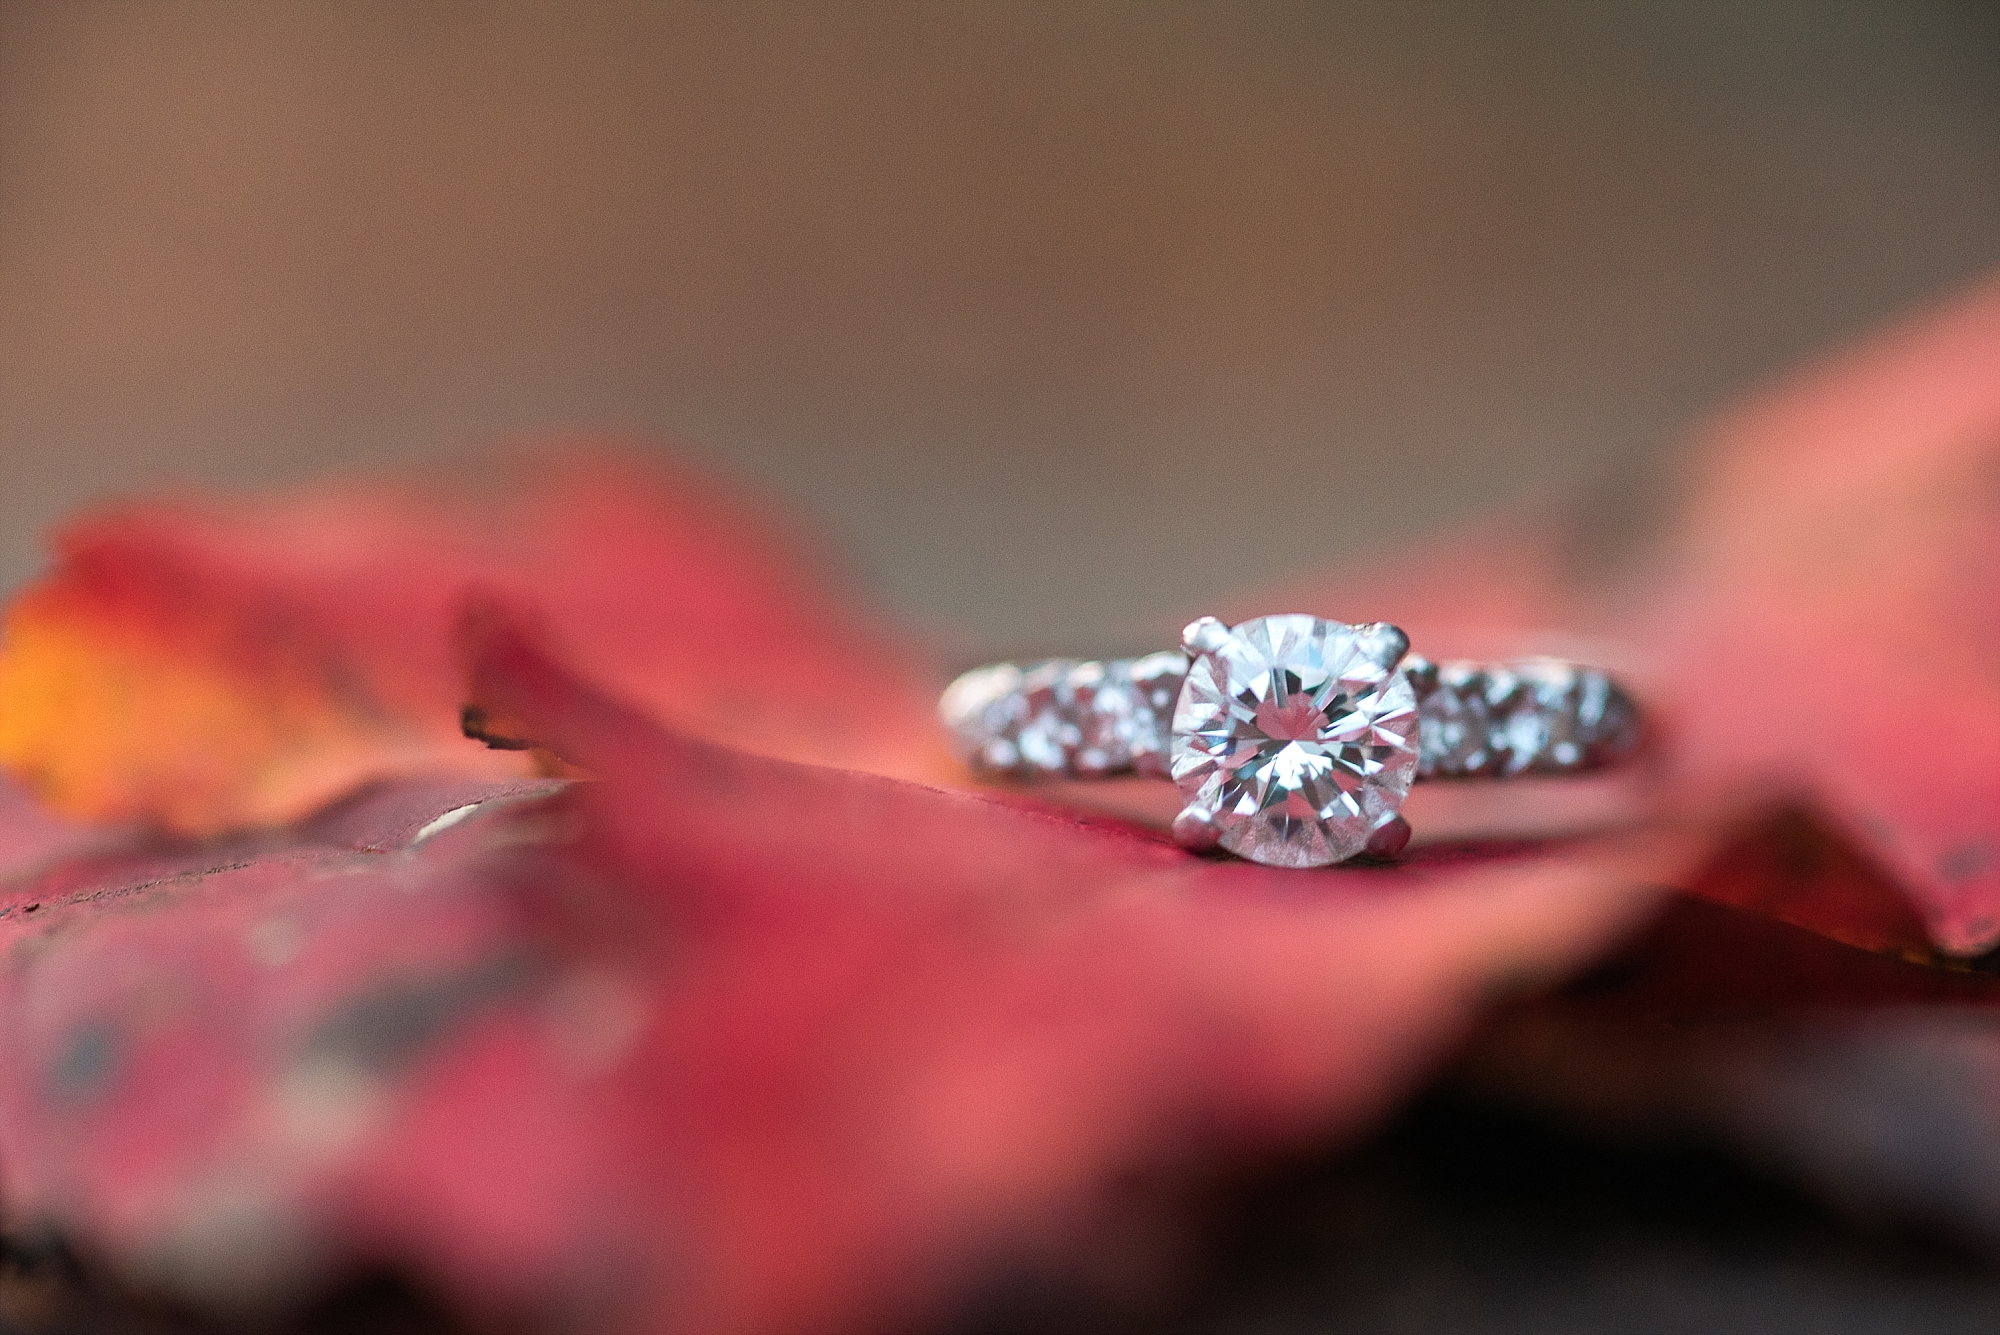 ring-shot-fall-leaves